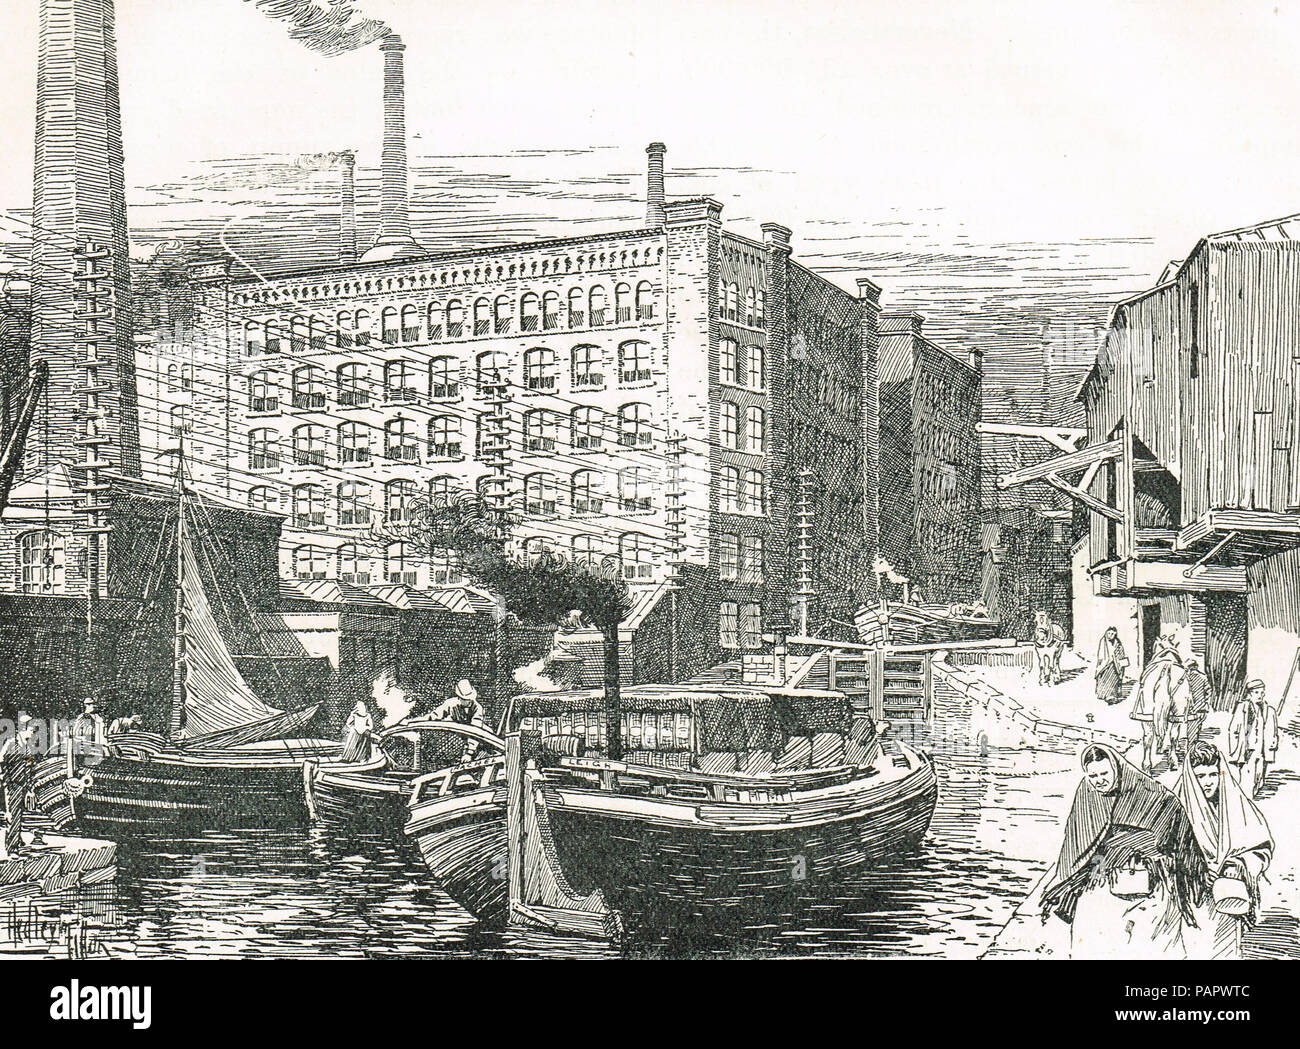 Cotton Mills at Miles Platting, Manchester, England in the 19th century - Stock Image